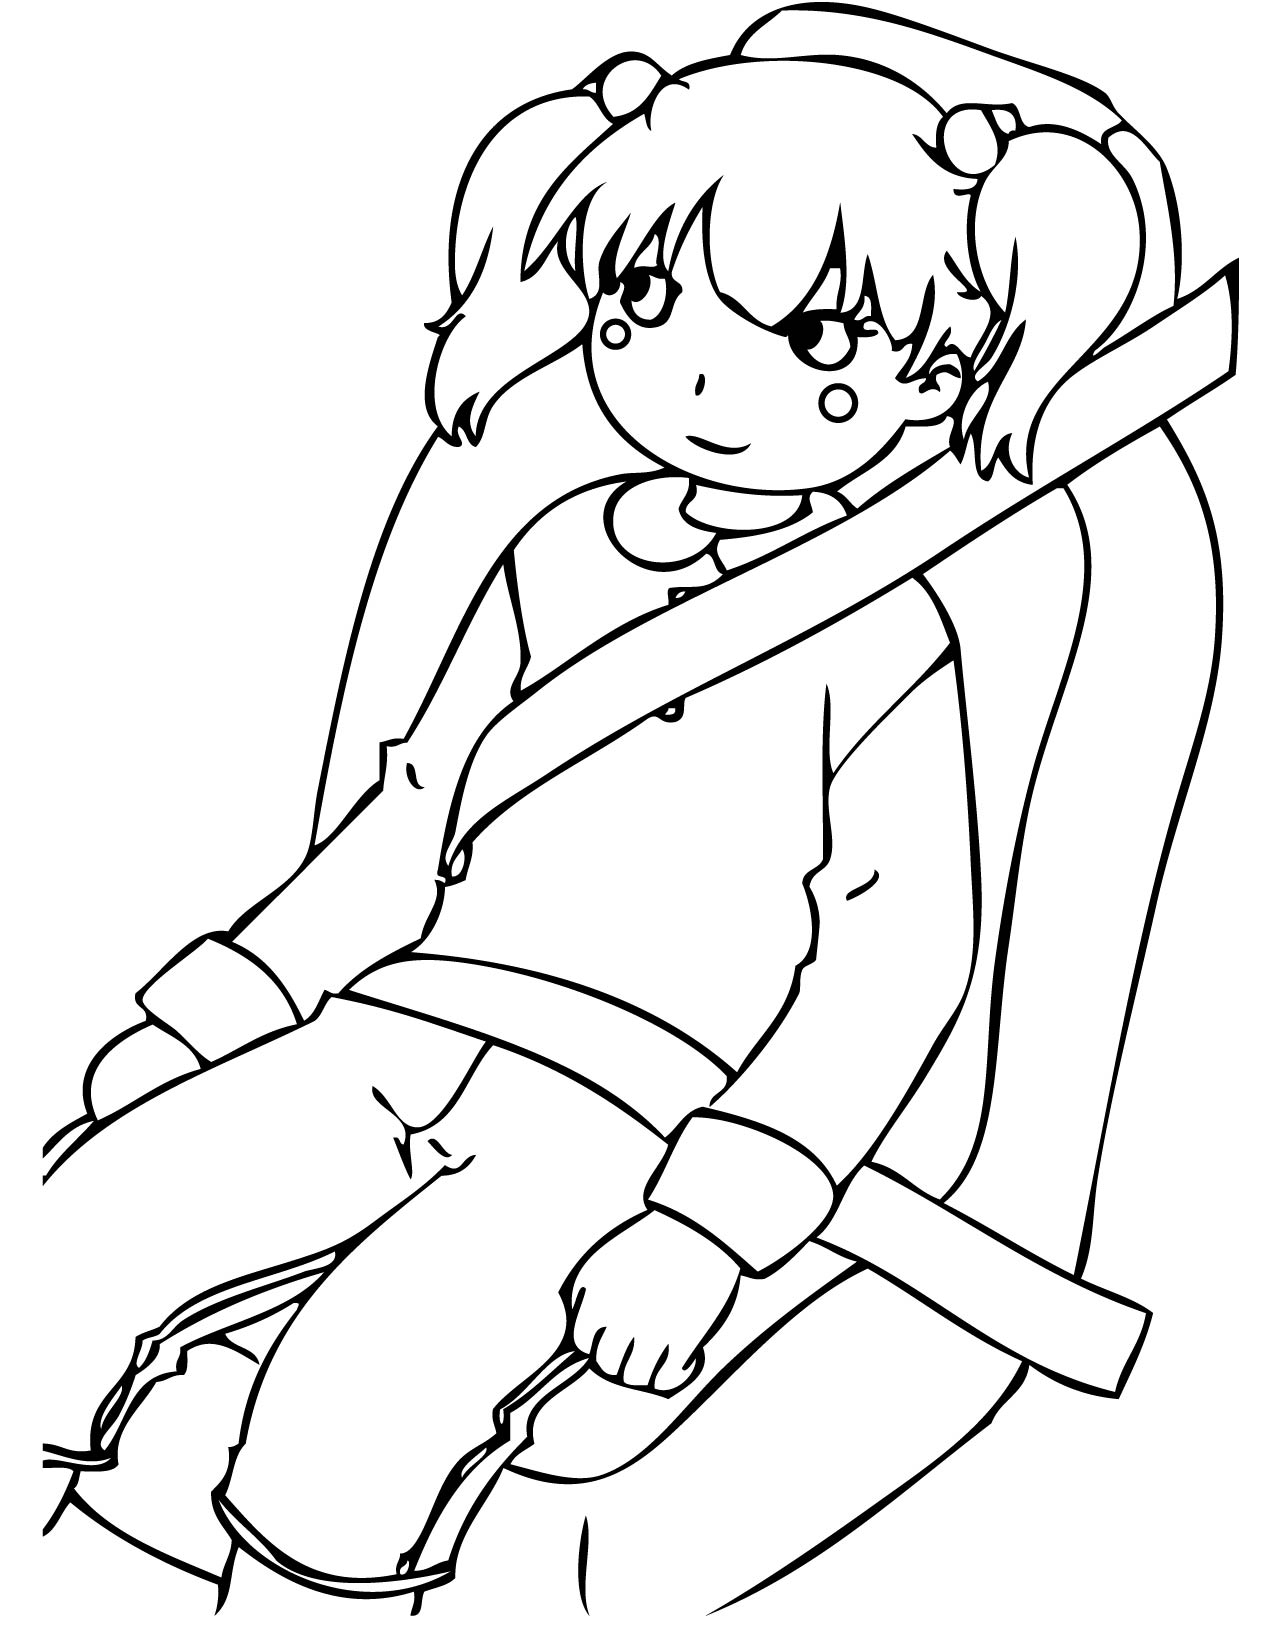 Car Seat Coloring Pages At Getdrawings